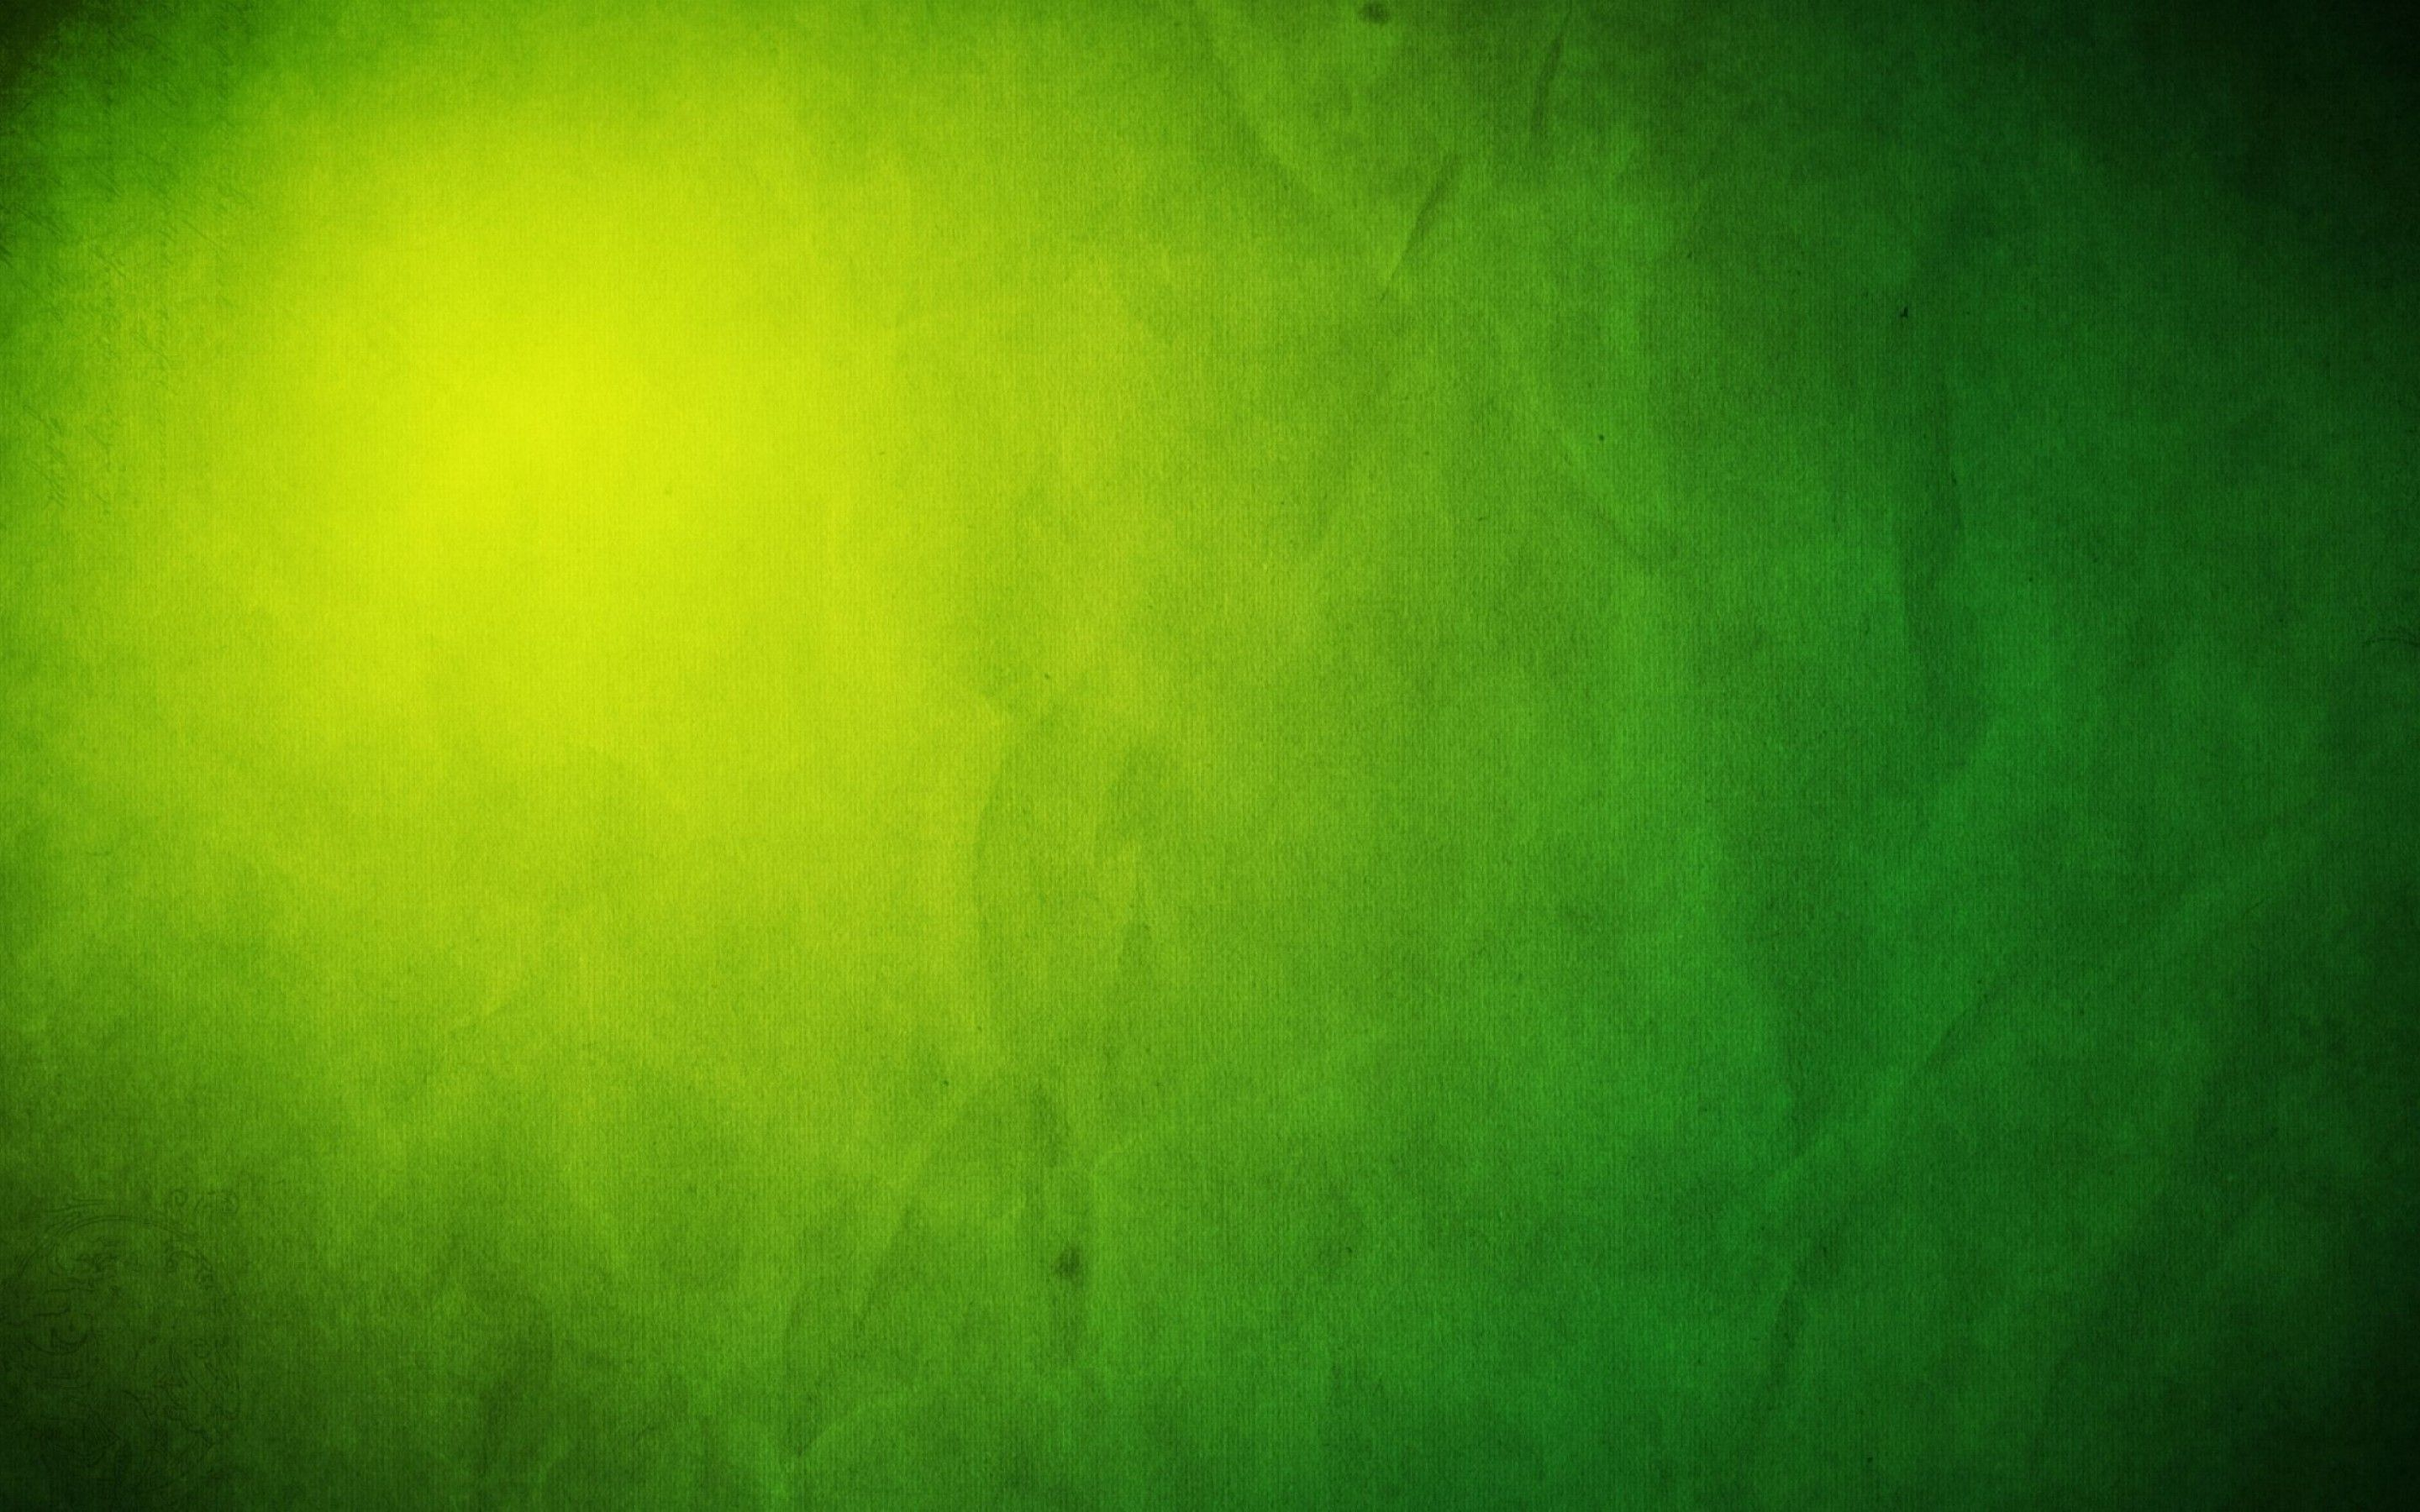 Green Background Green Background Hd Wallpapers Green Texture